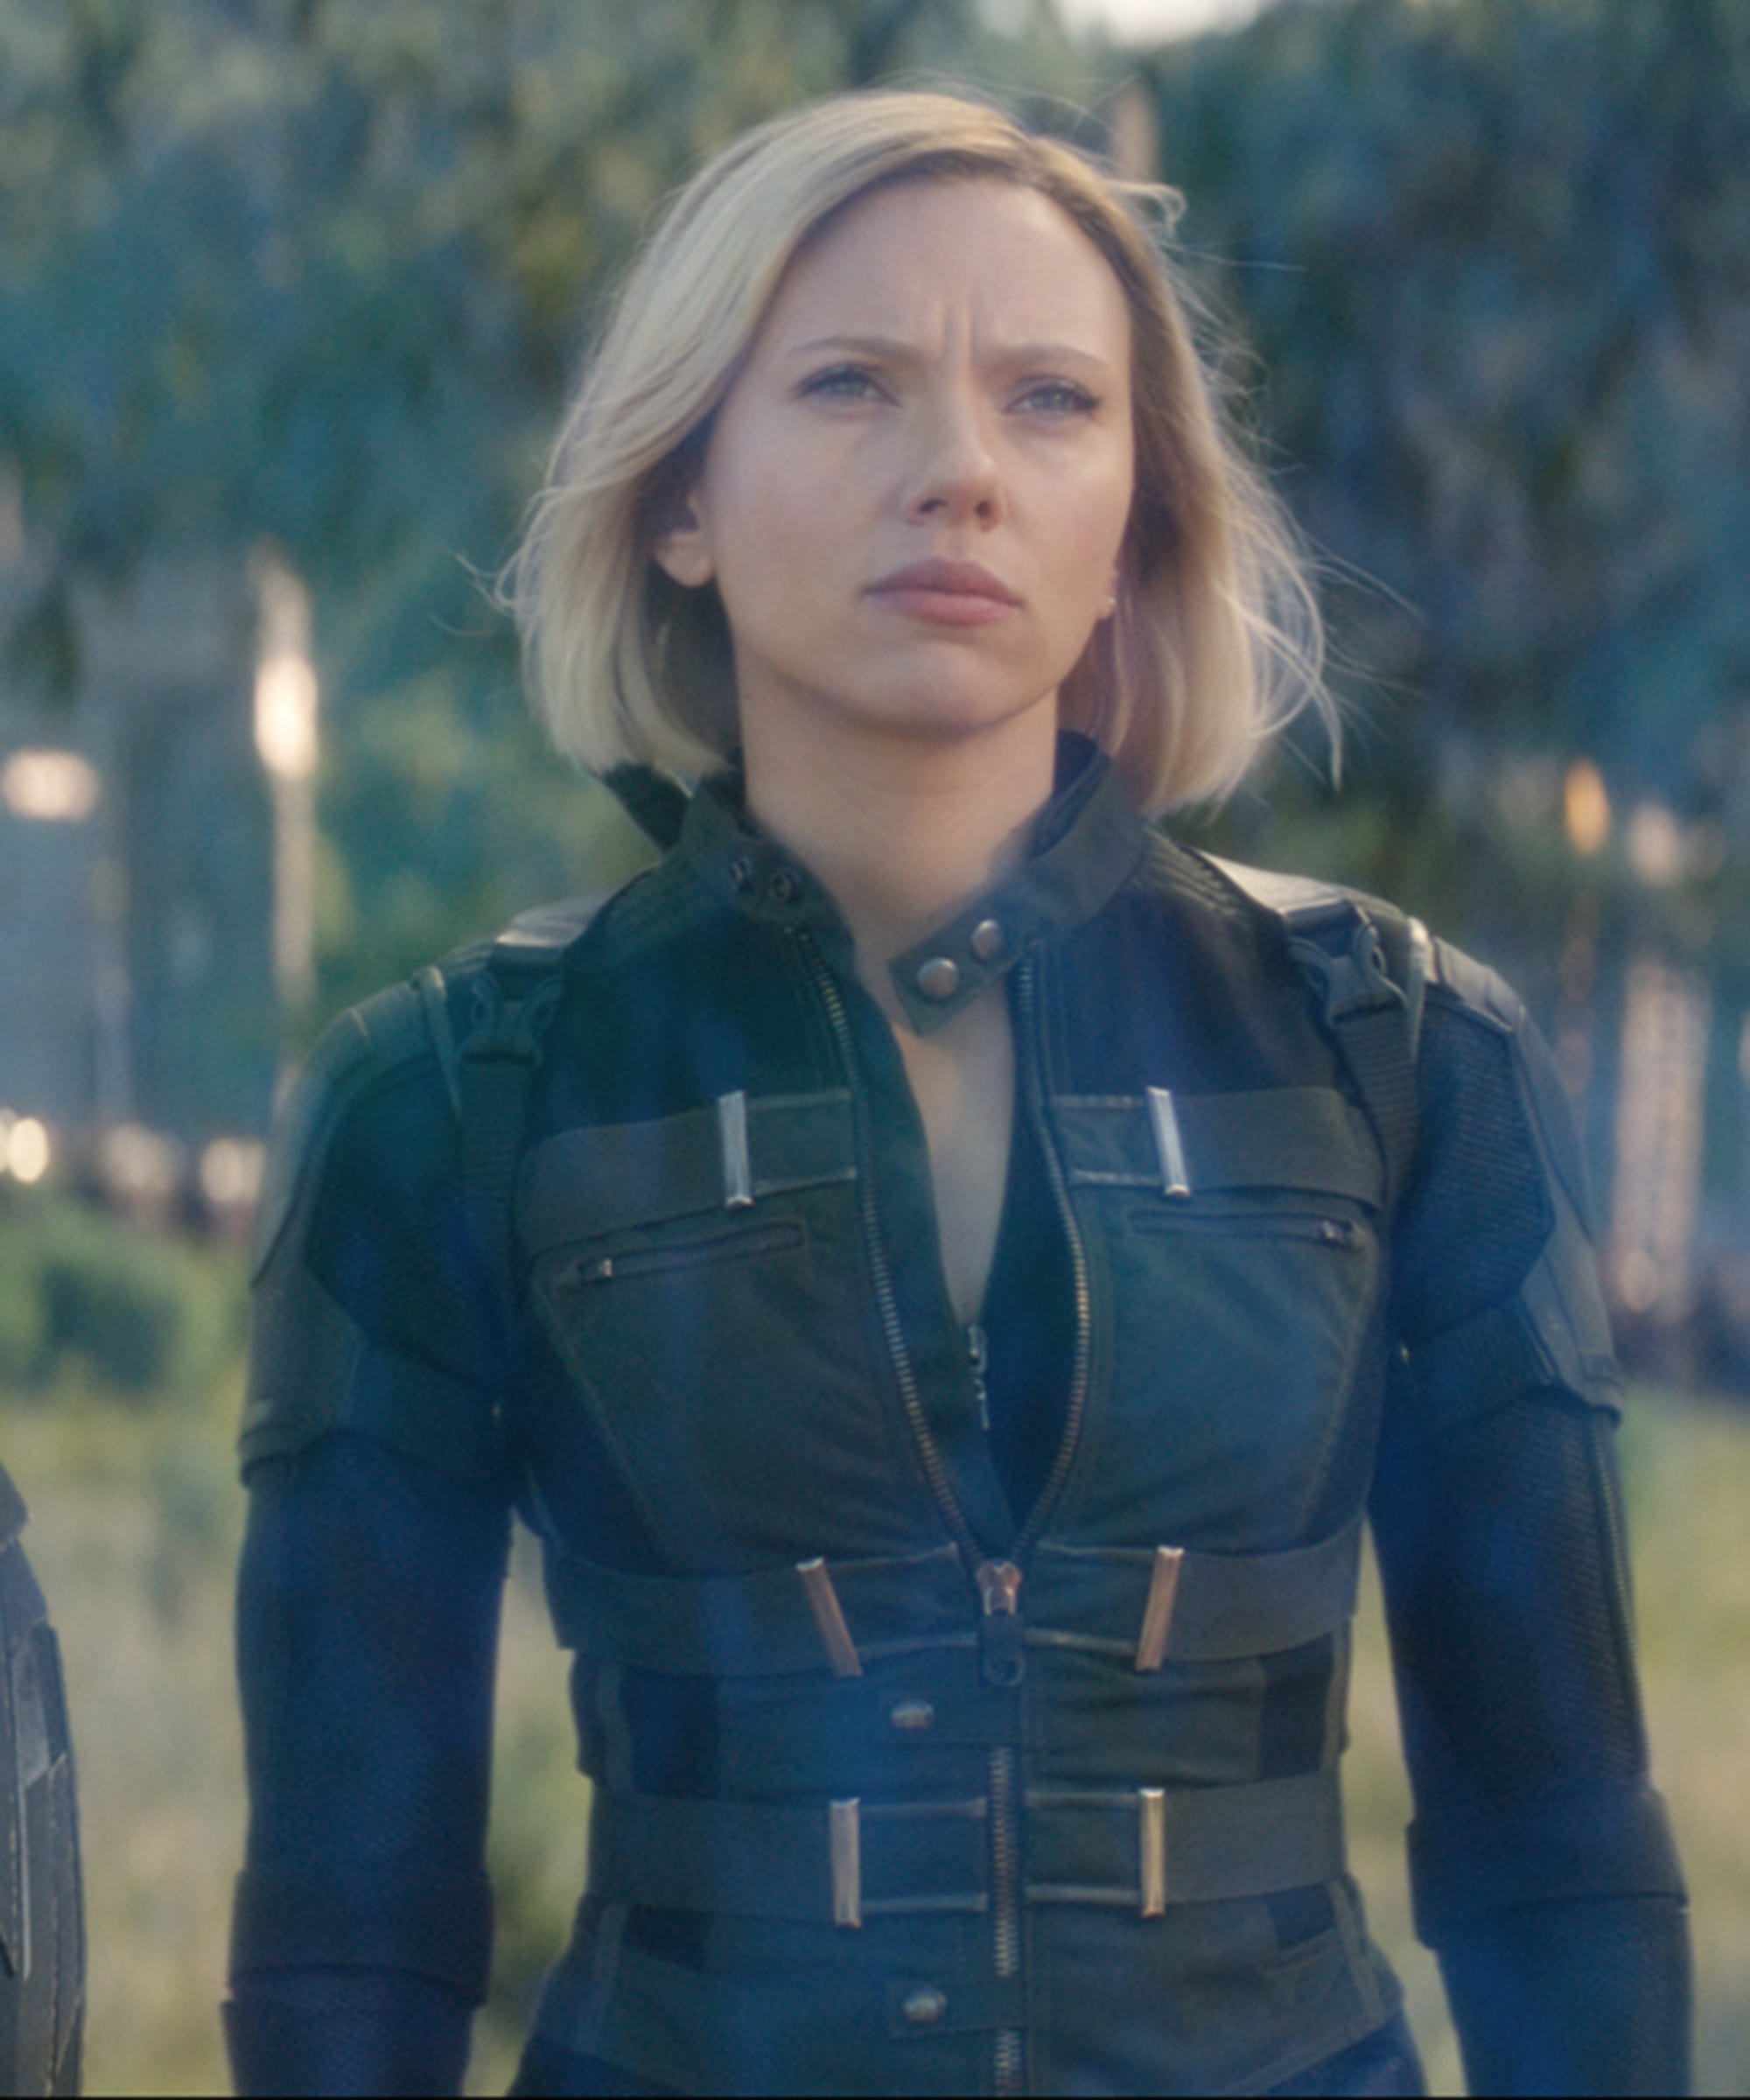 The Black Widow Movie Is Loaded With Famous Faces — Here's Everything You Need To Know About The Cast